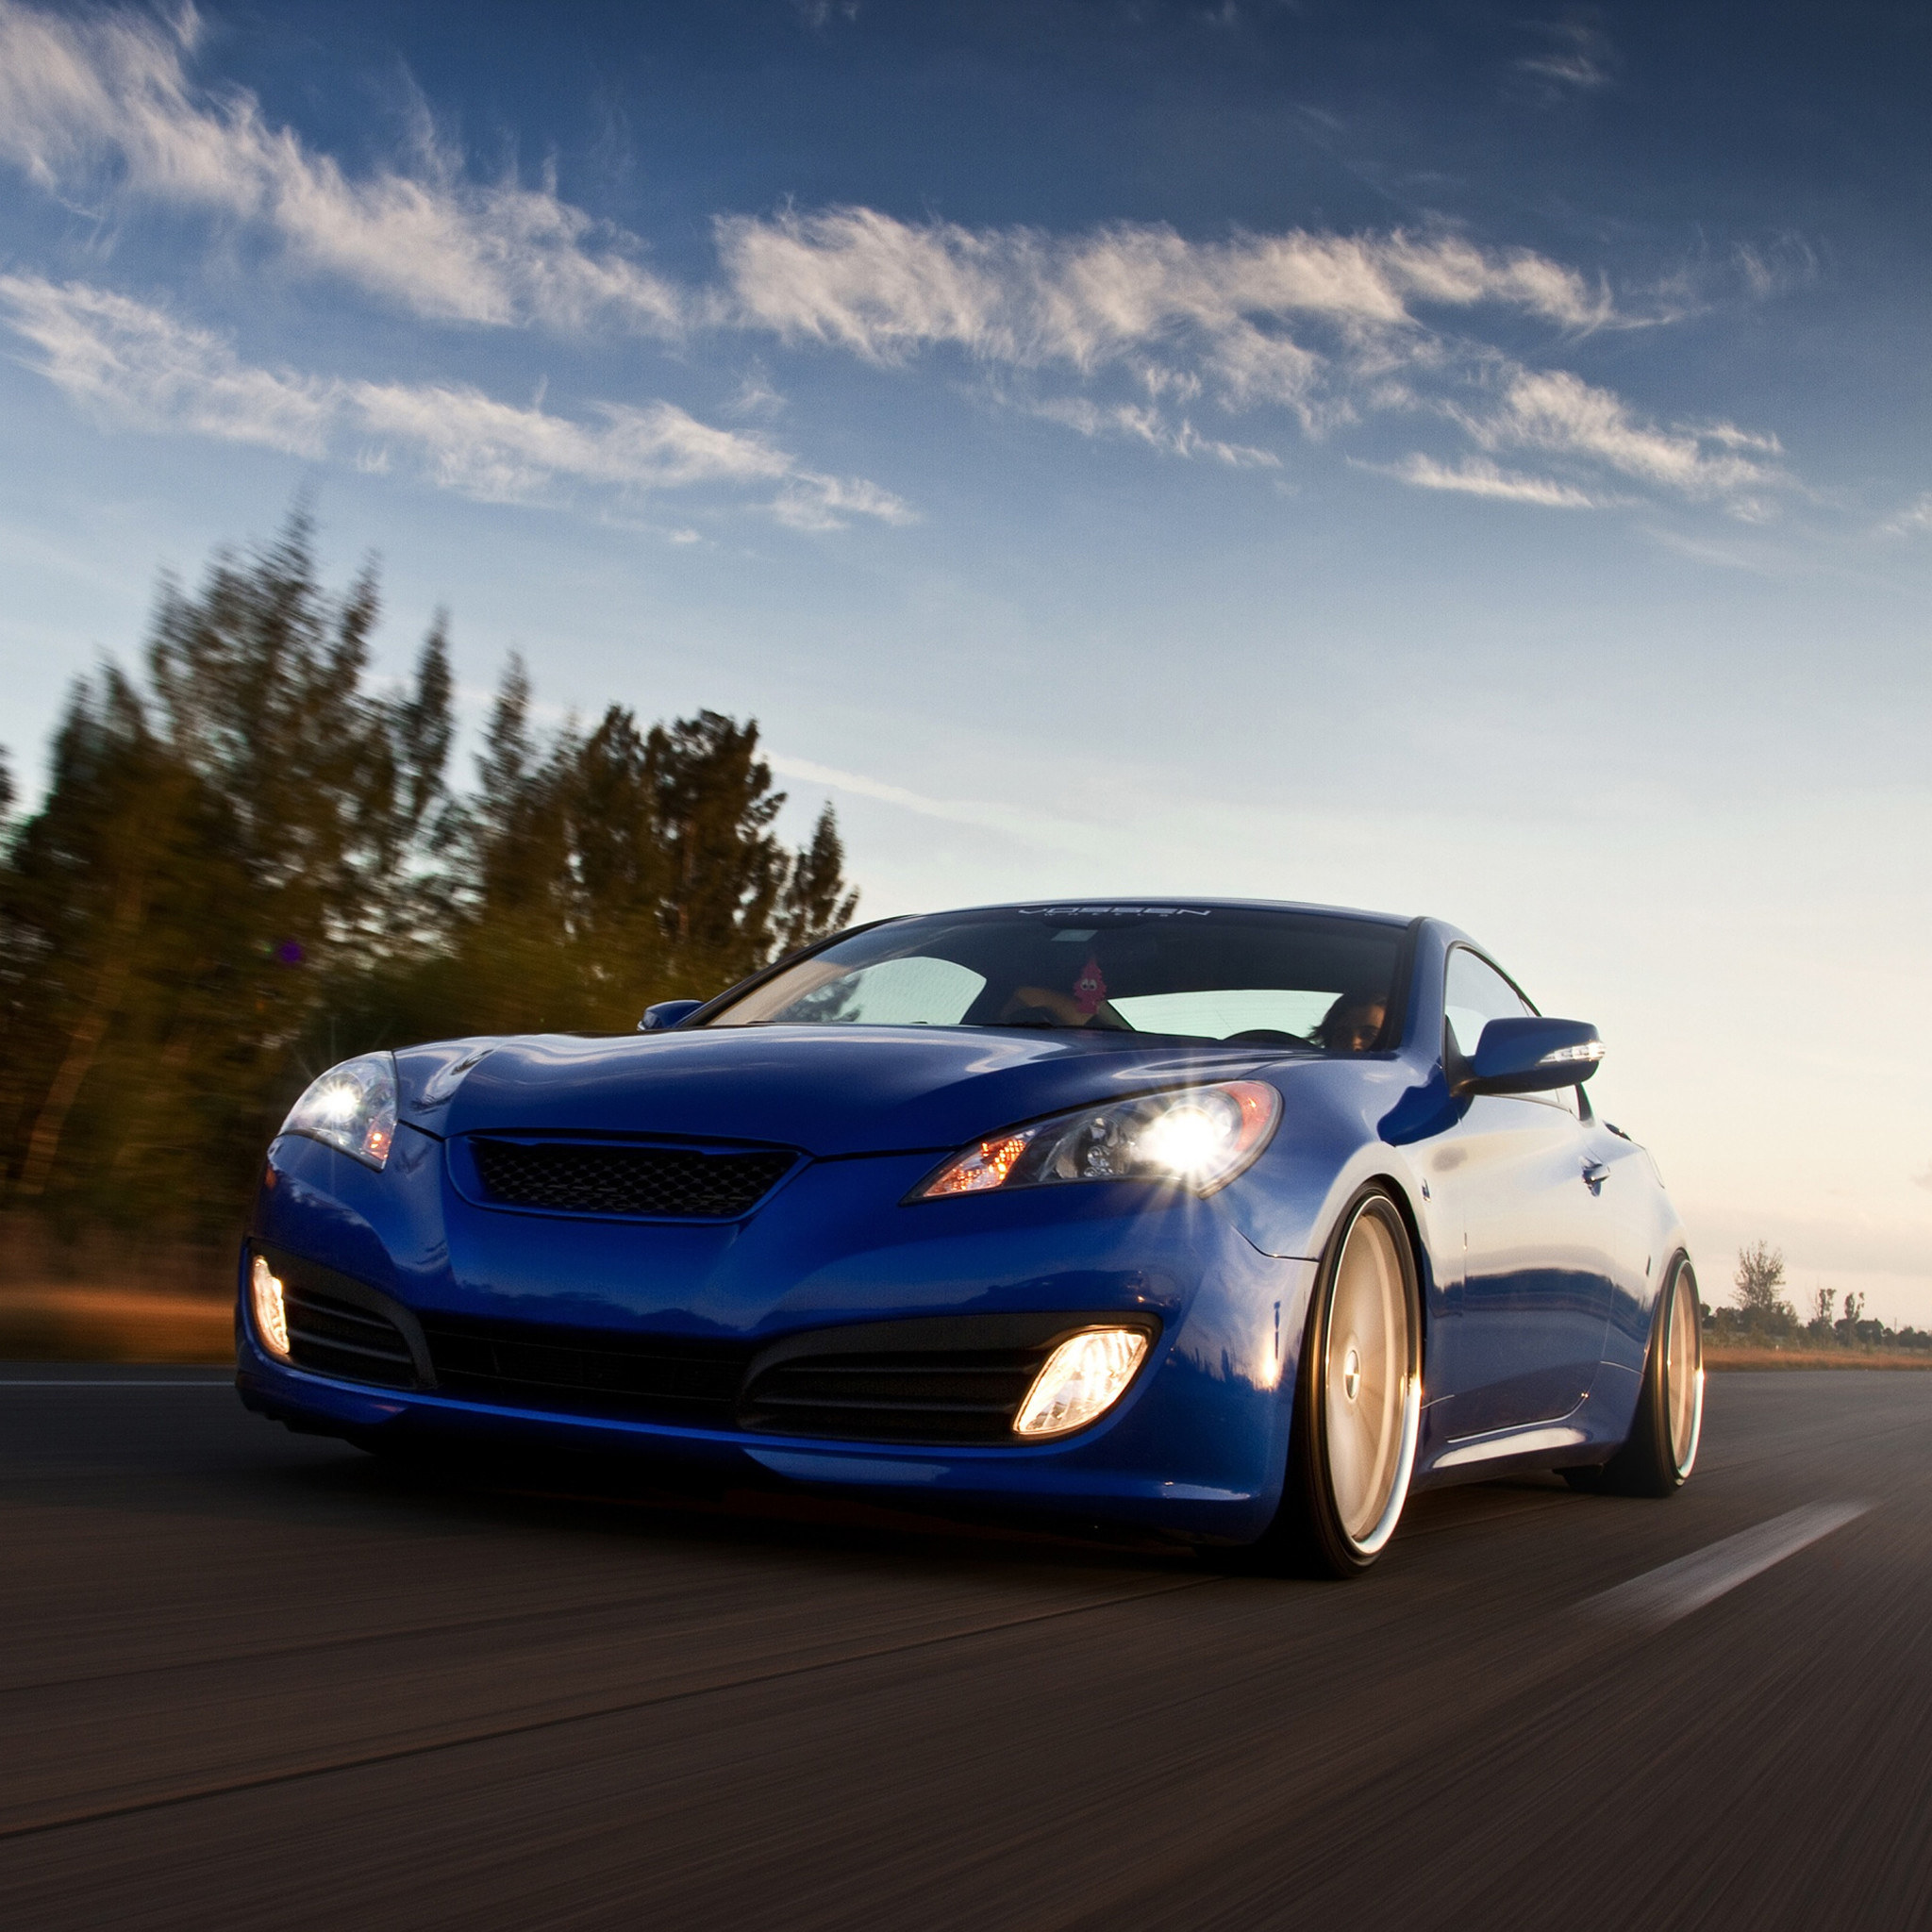 Vossen Wheels Genesis Roller3Wallpapers iPad Retina Vossen Wheels Genesis Roller   iPad Retina